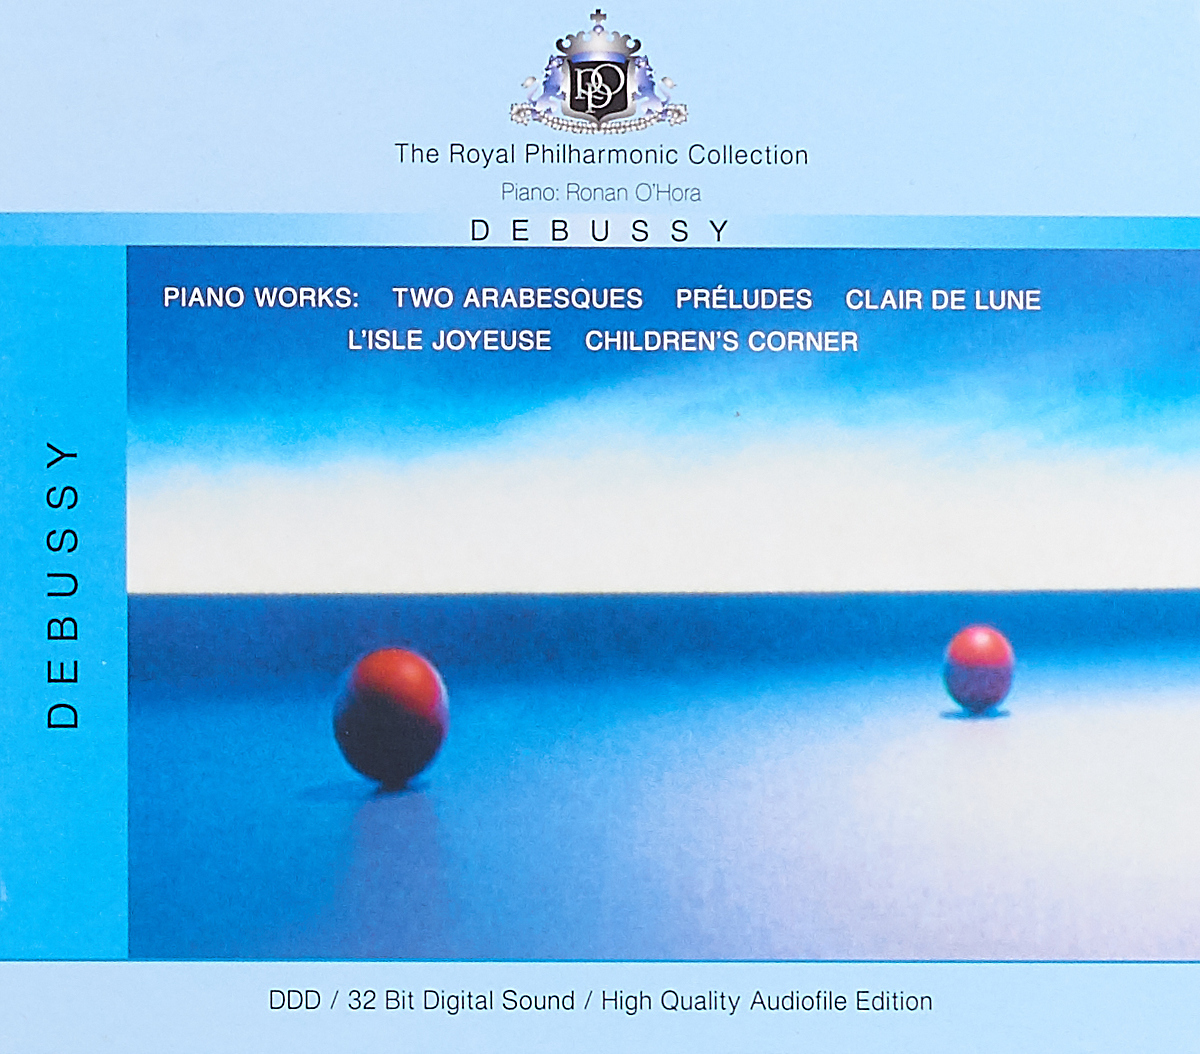 The Royal Philharmonic Orchestra Orchestra. Debussy. Piano Works